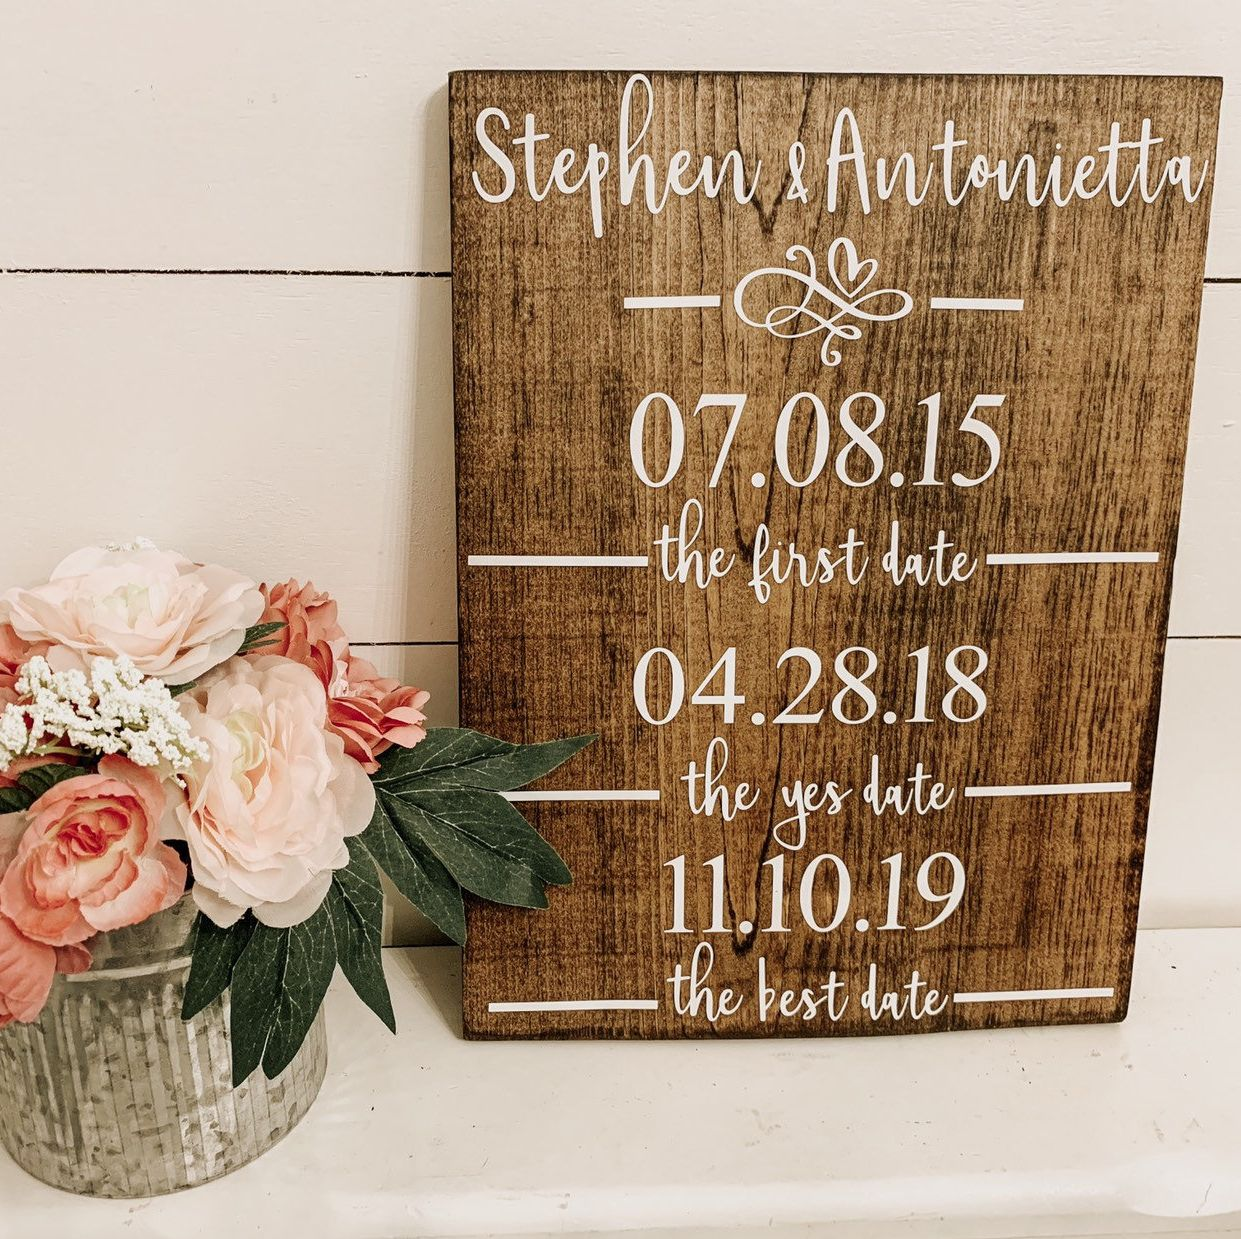 First Date Yes Date Best Date Engagement Wedding Date Etsy Wedding Date Sign Bridal Shower Signs Farmhouse Wedding